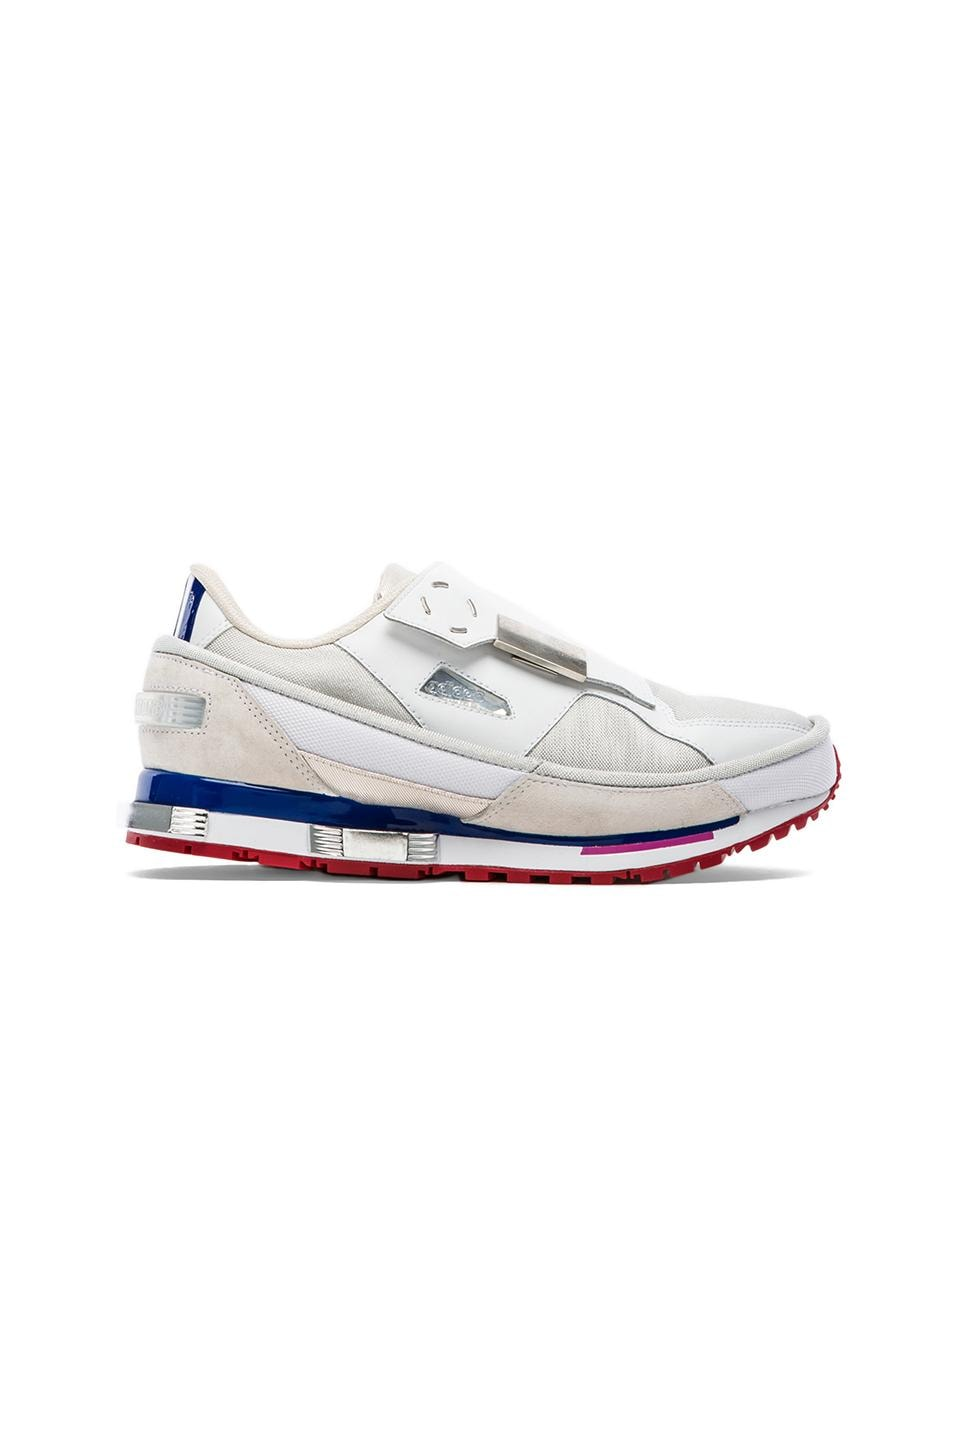 adidas by Raf Simons Rising Star 2 in White &  White &  University Red